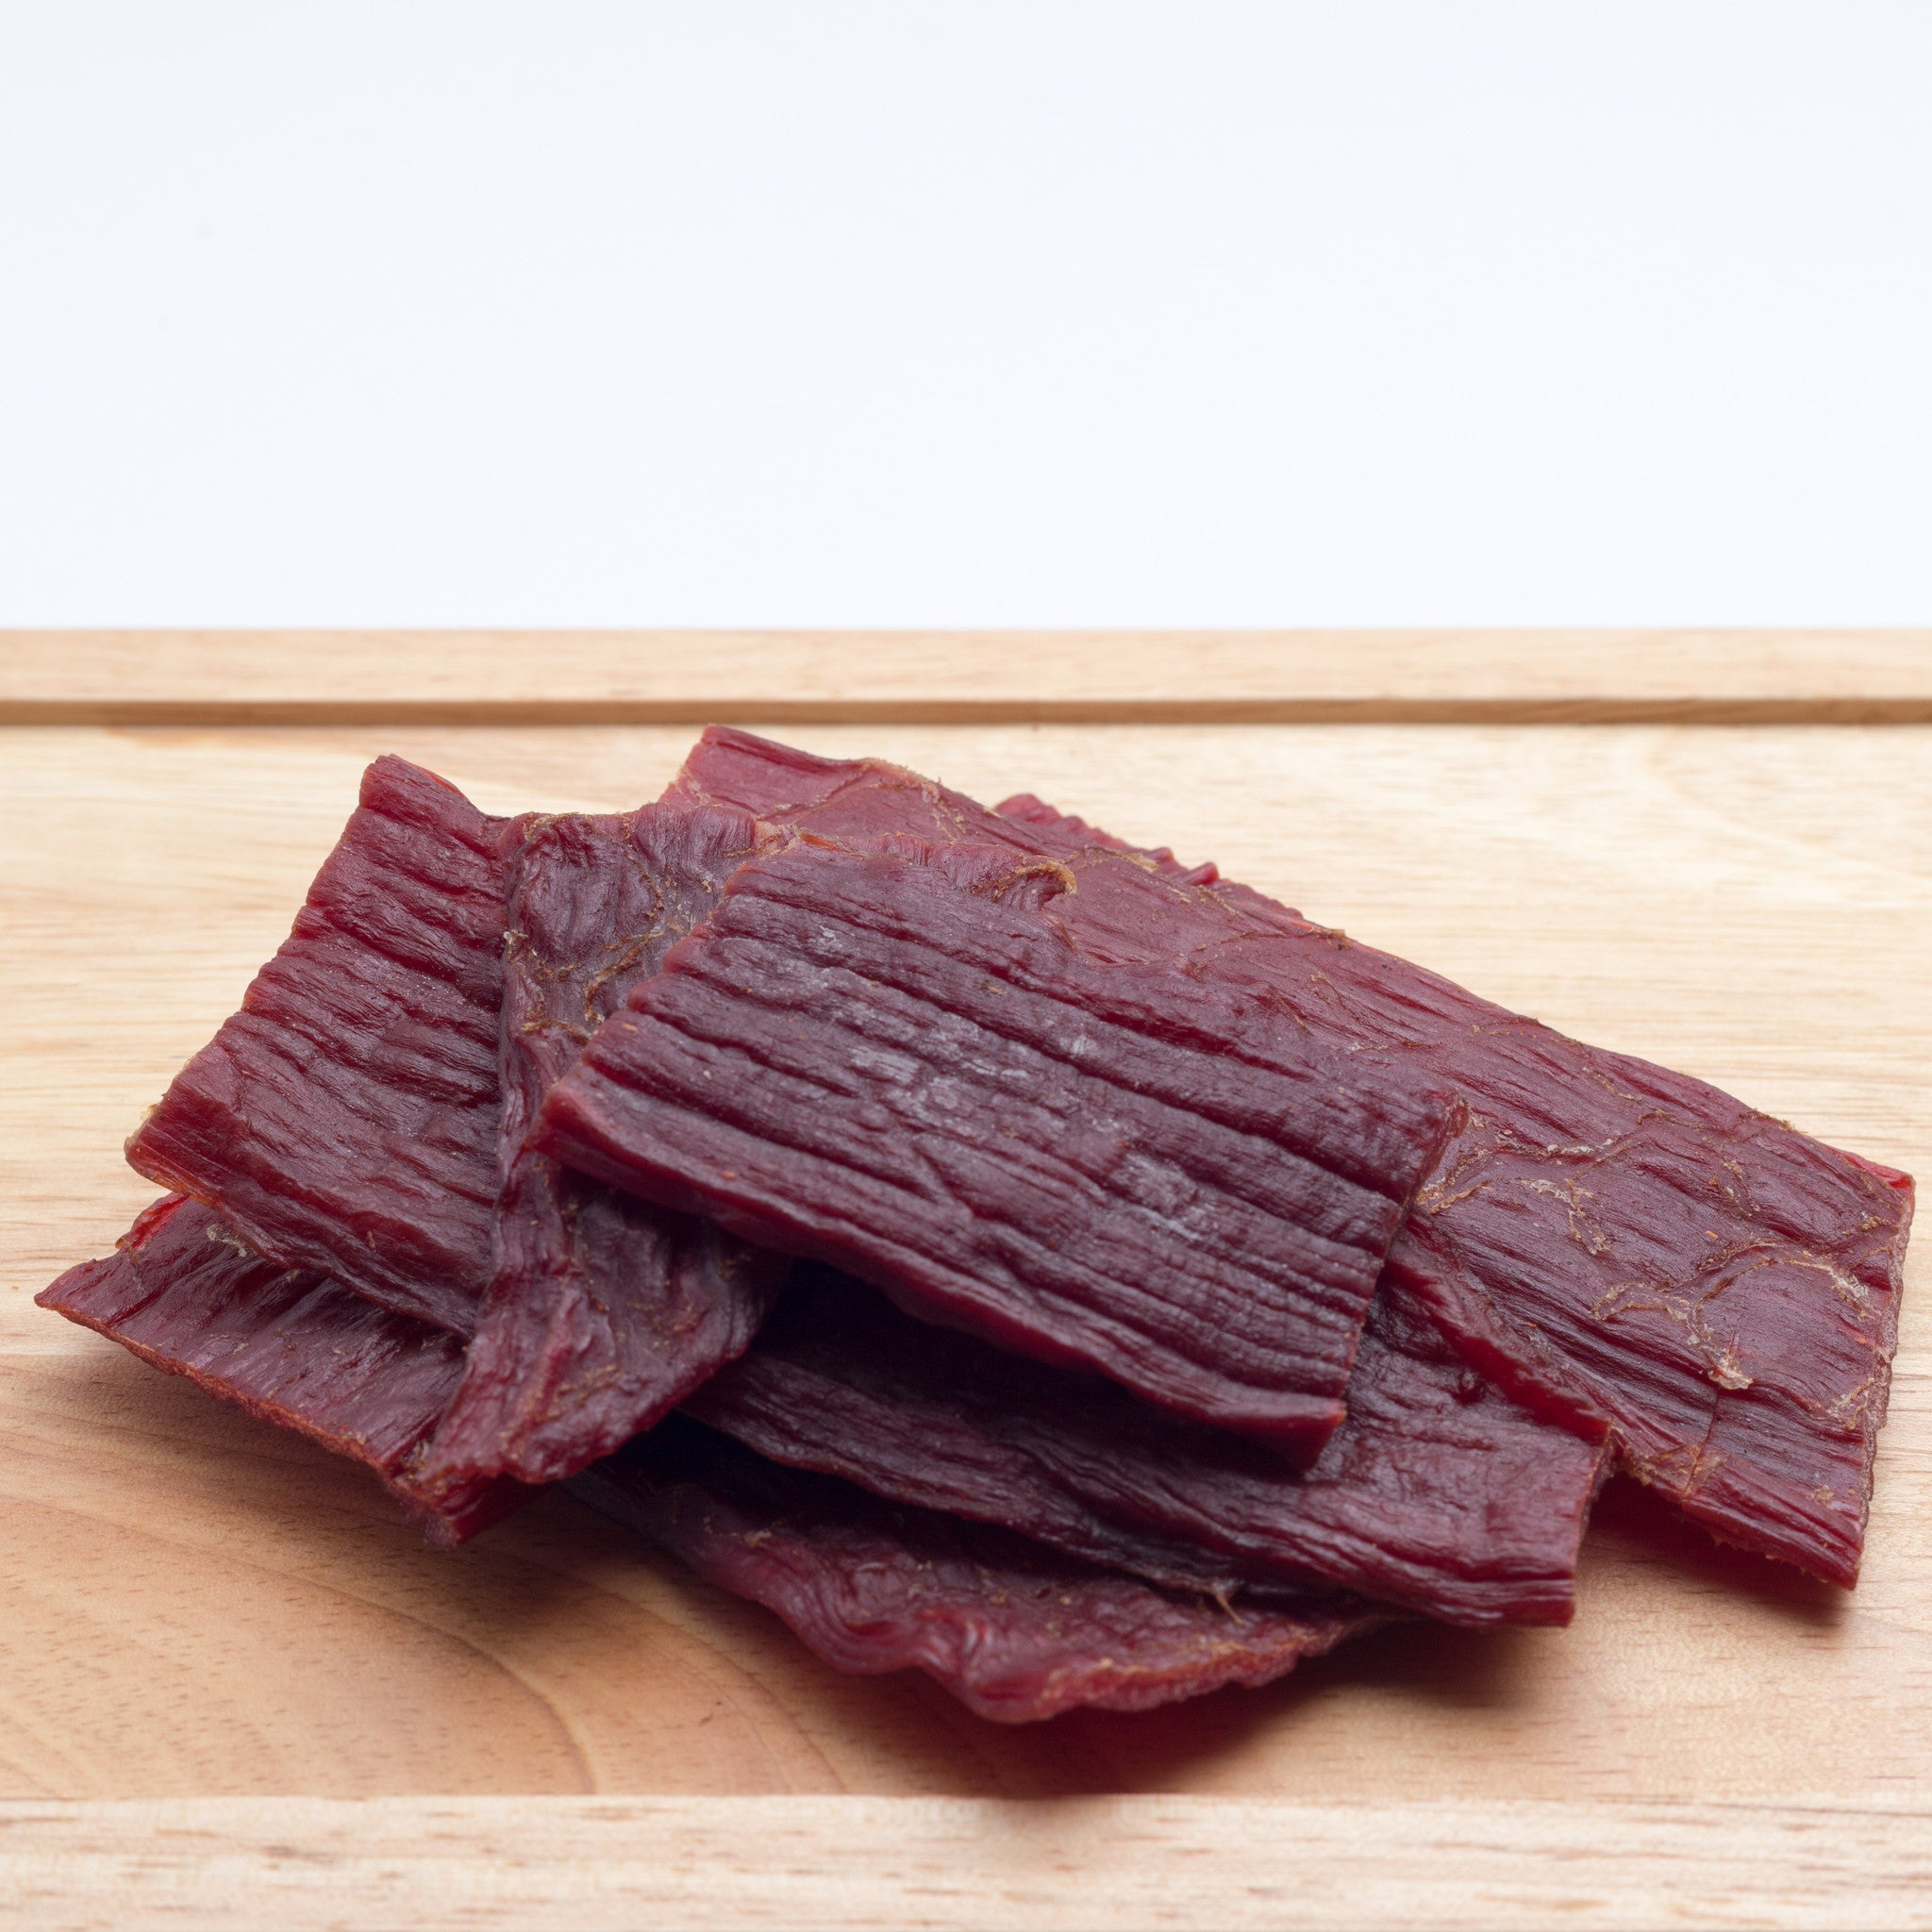 (1lb) Taurus Beef Jerky - Mild Flavor - Thick & Chewy